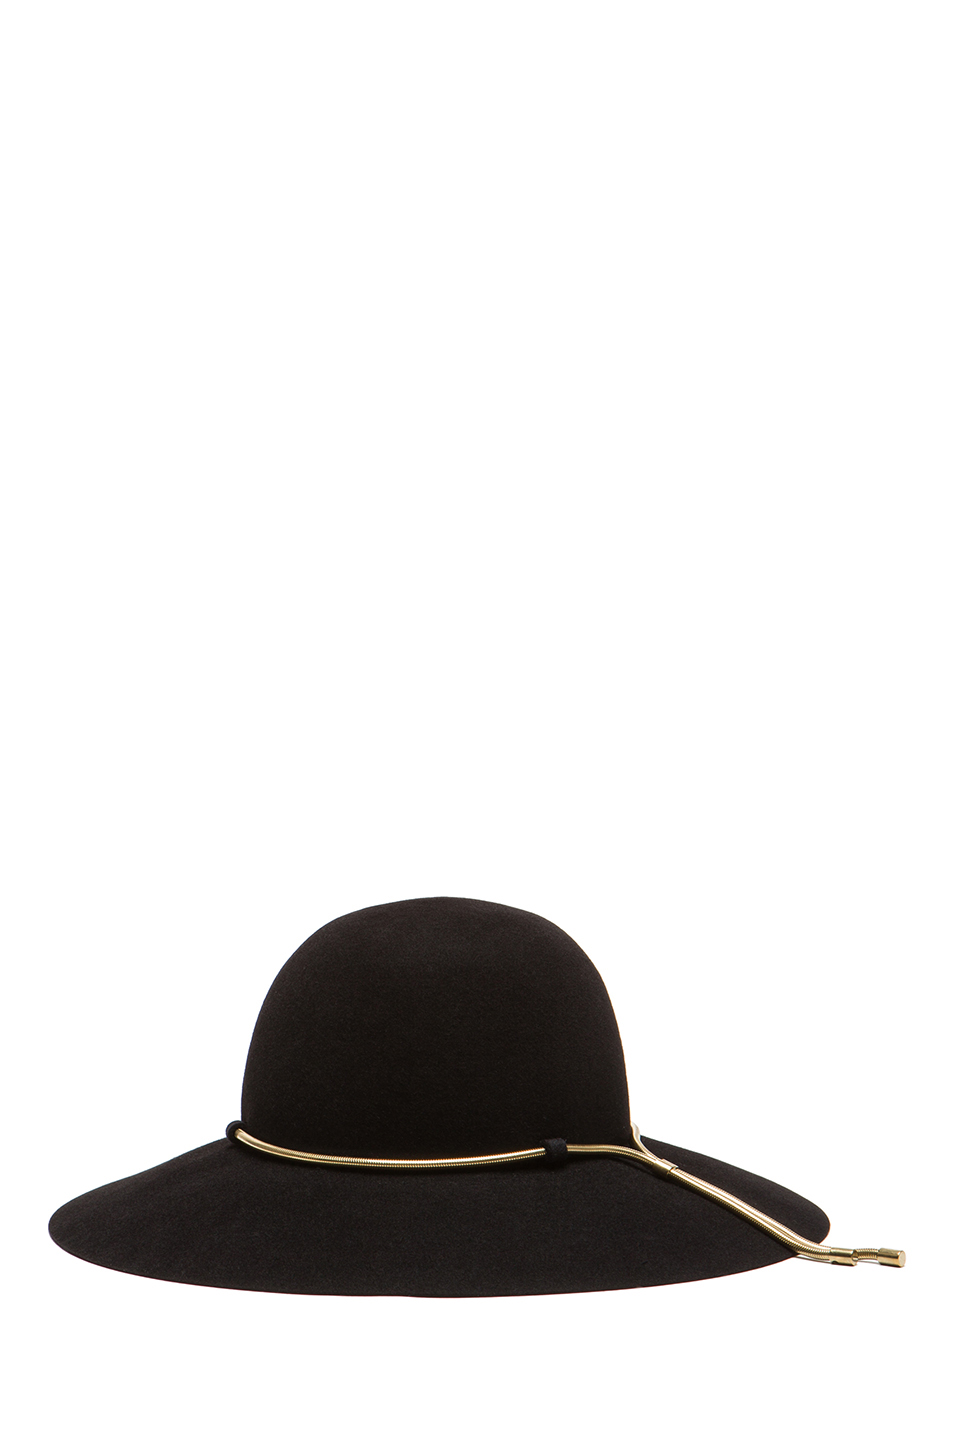 Lanvin | Capeline Hat with Chain in Black